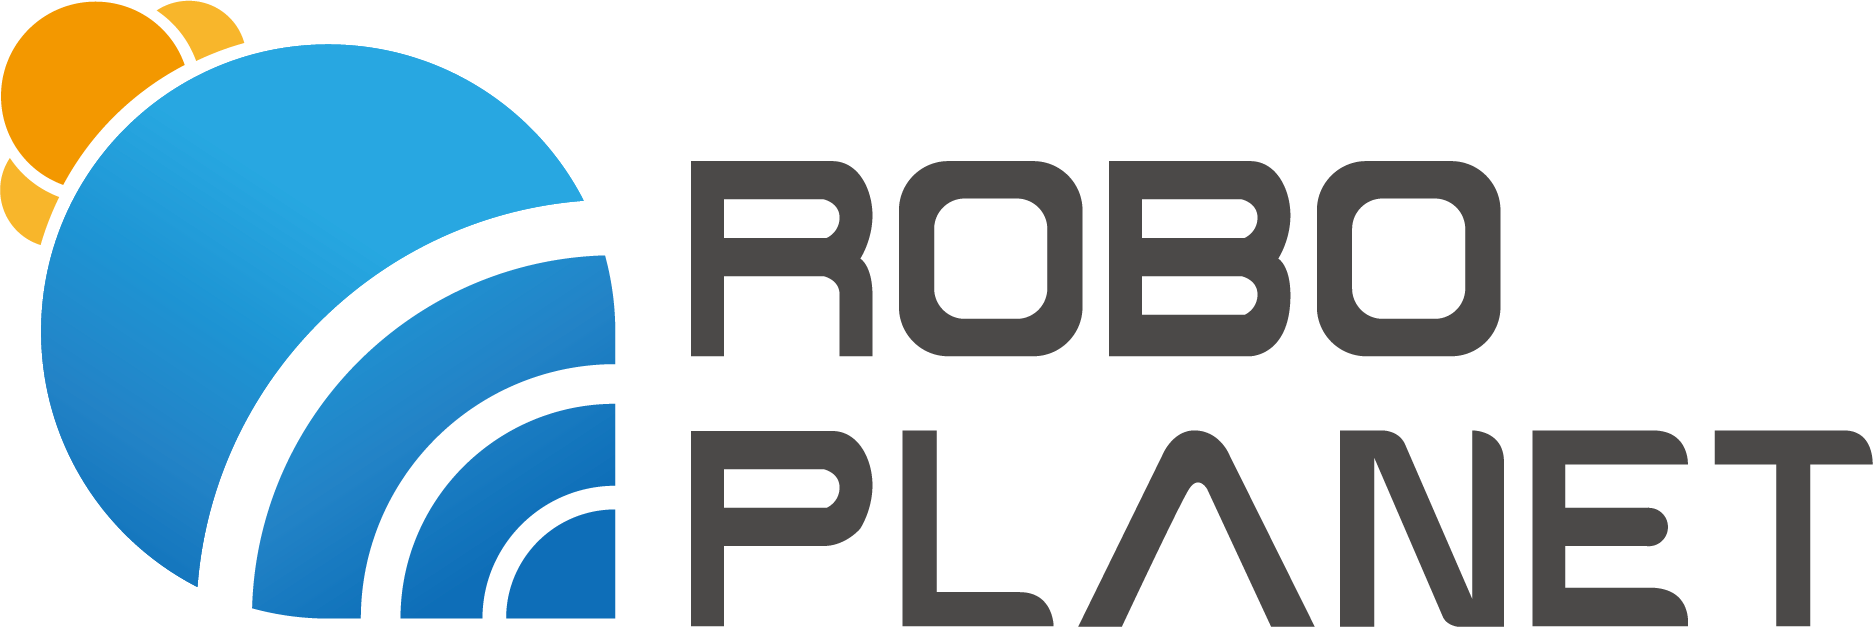 RoboPlanet Education Community and Society Logo